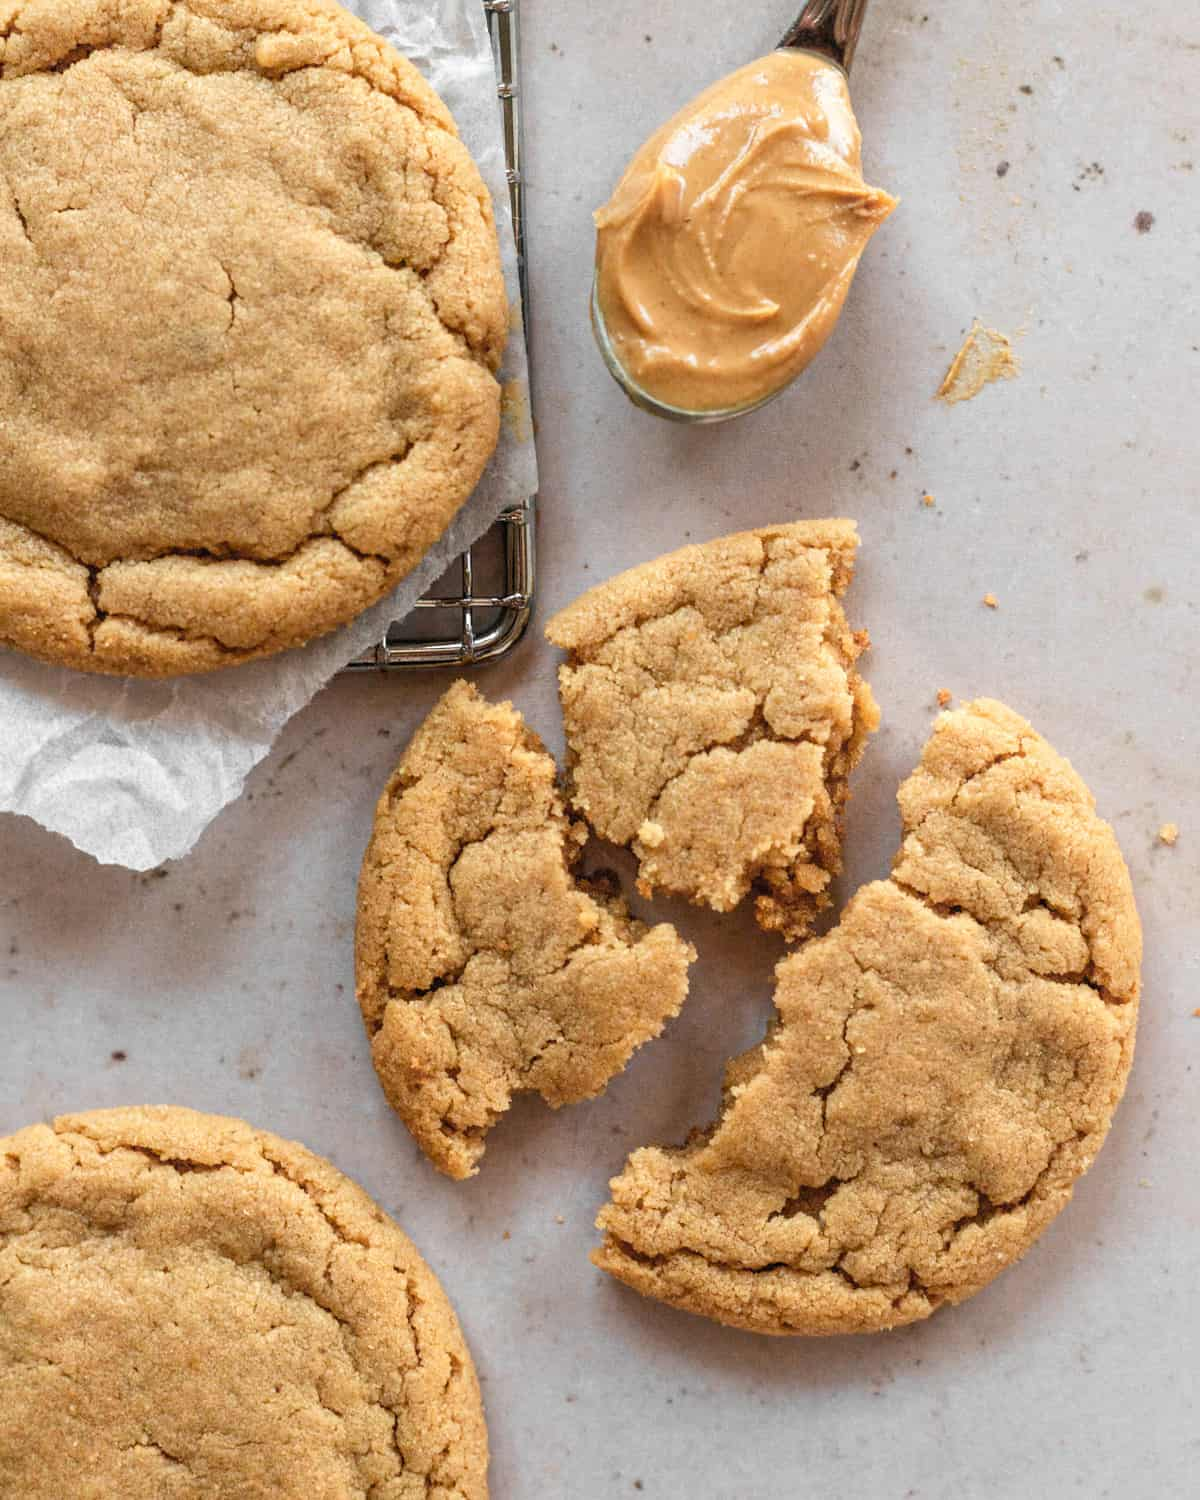 a cookie that is broken up with other cookies surrounding it and a spoonful of peanut butter.